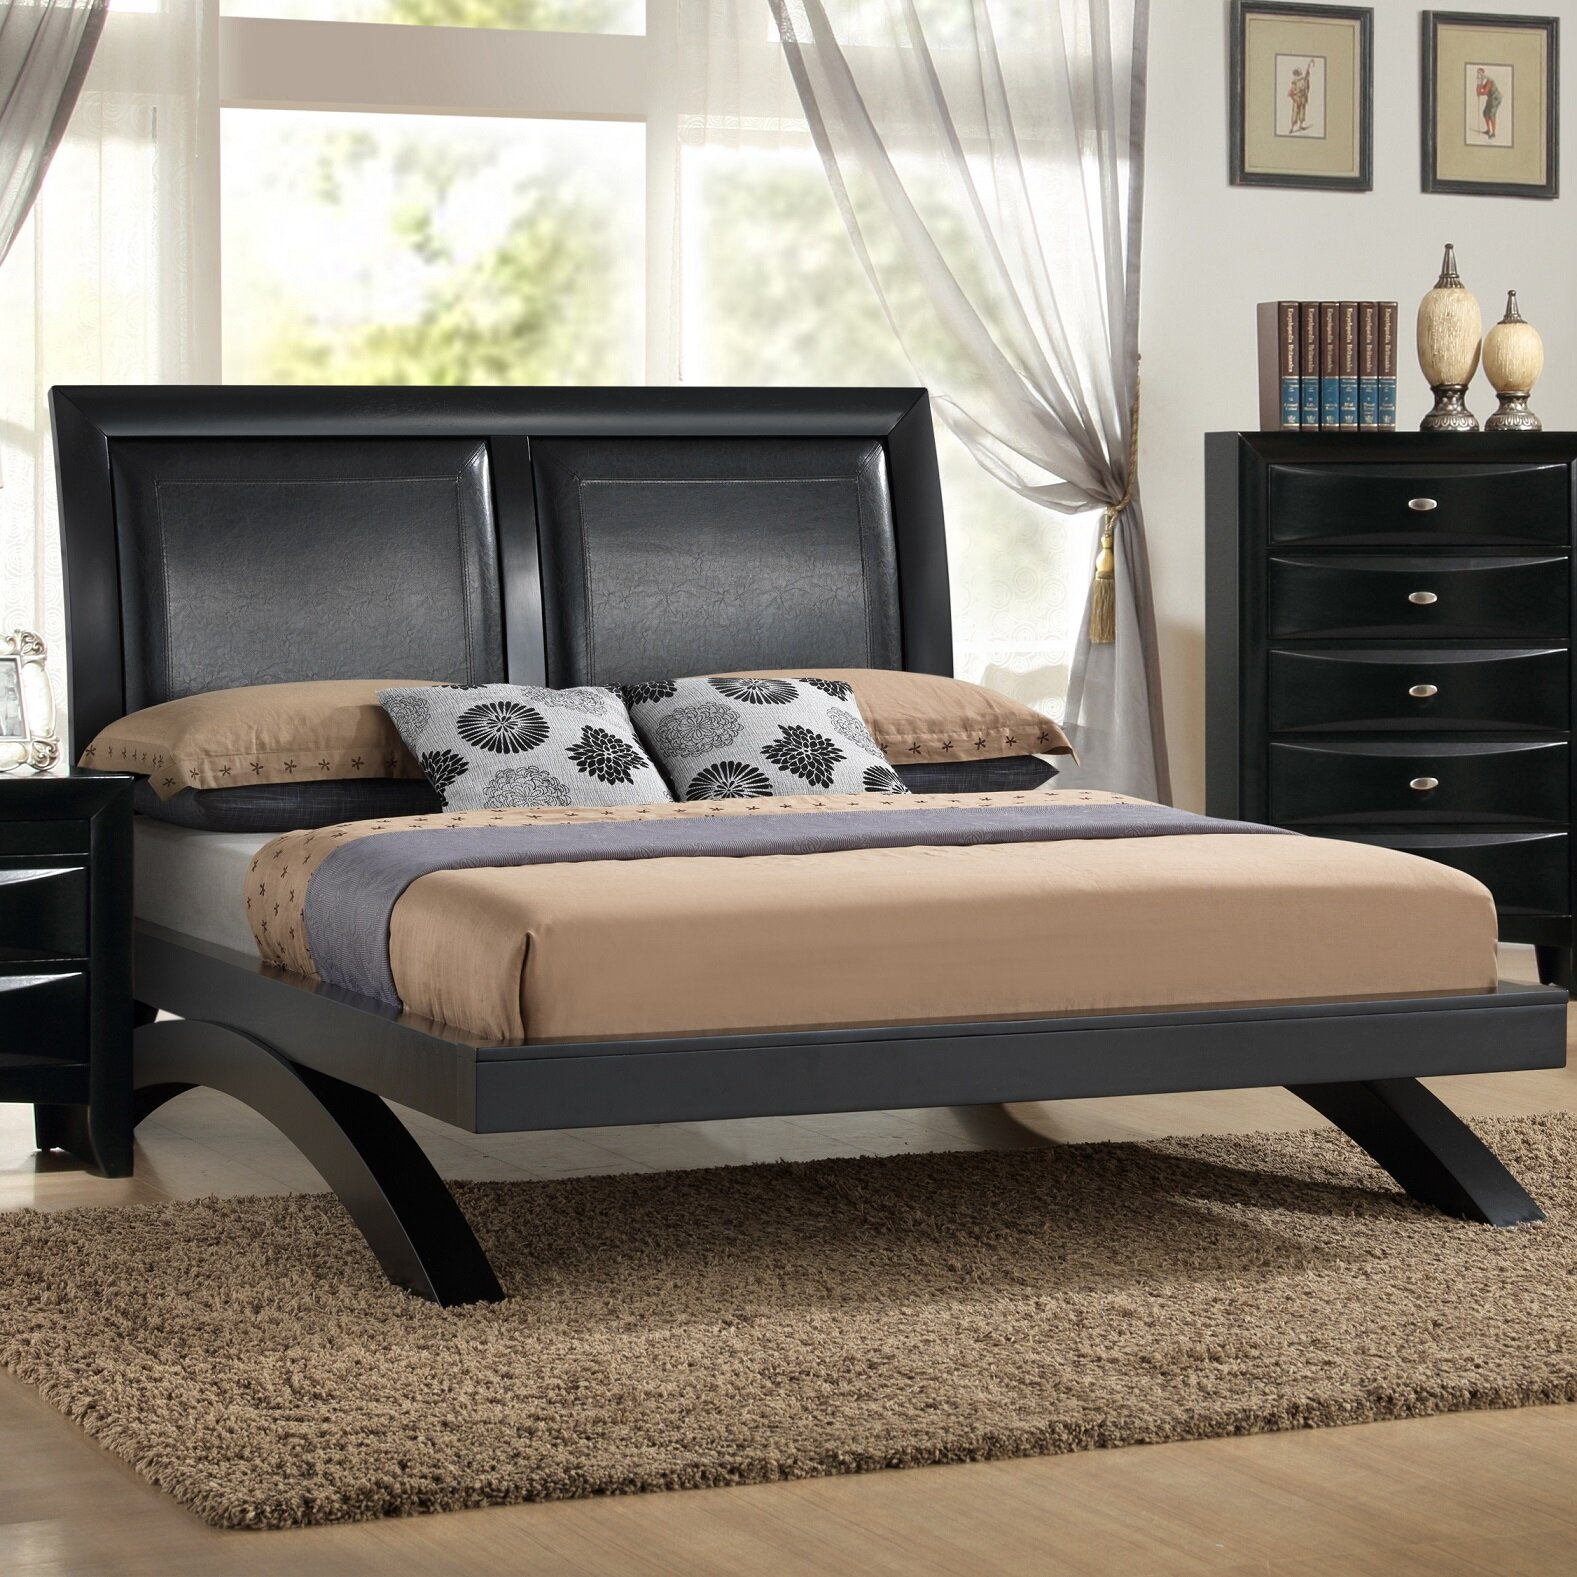 roundhill furniture blemerey 6 piece platform bedroom set 12918 | roundhill furniture blemerey 6 piece platform bedroom set